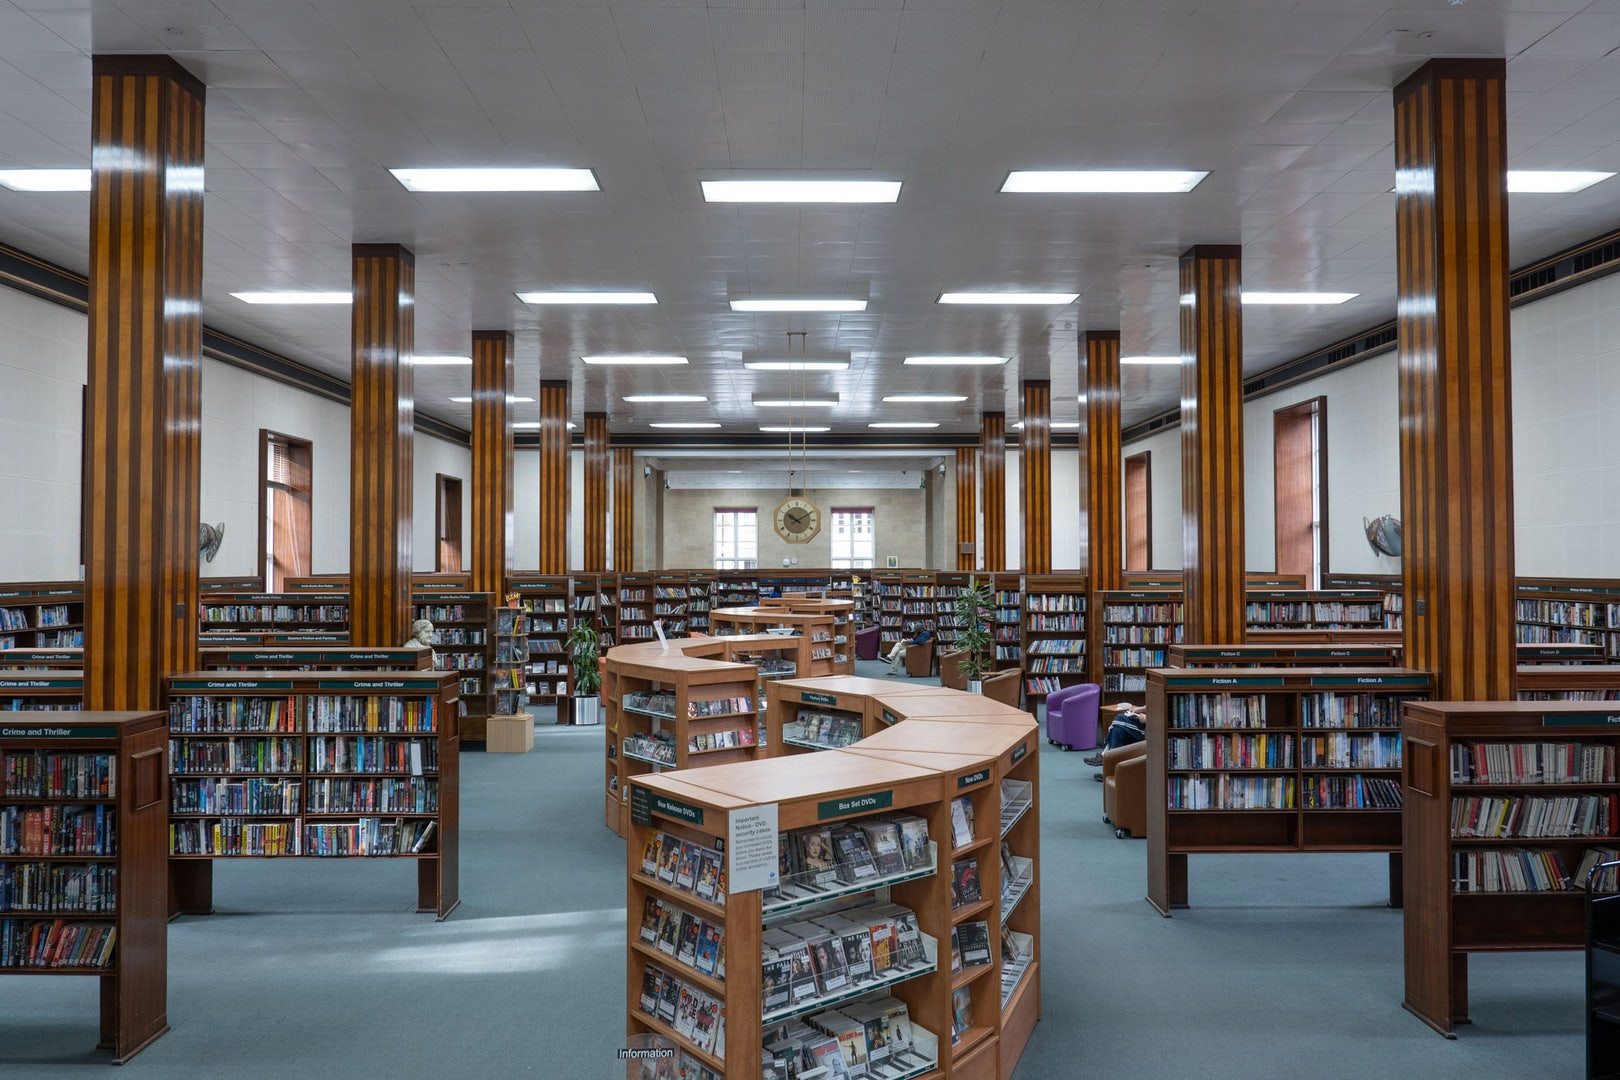 interior of the Kensington Central Library